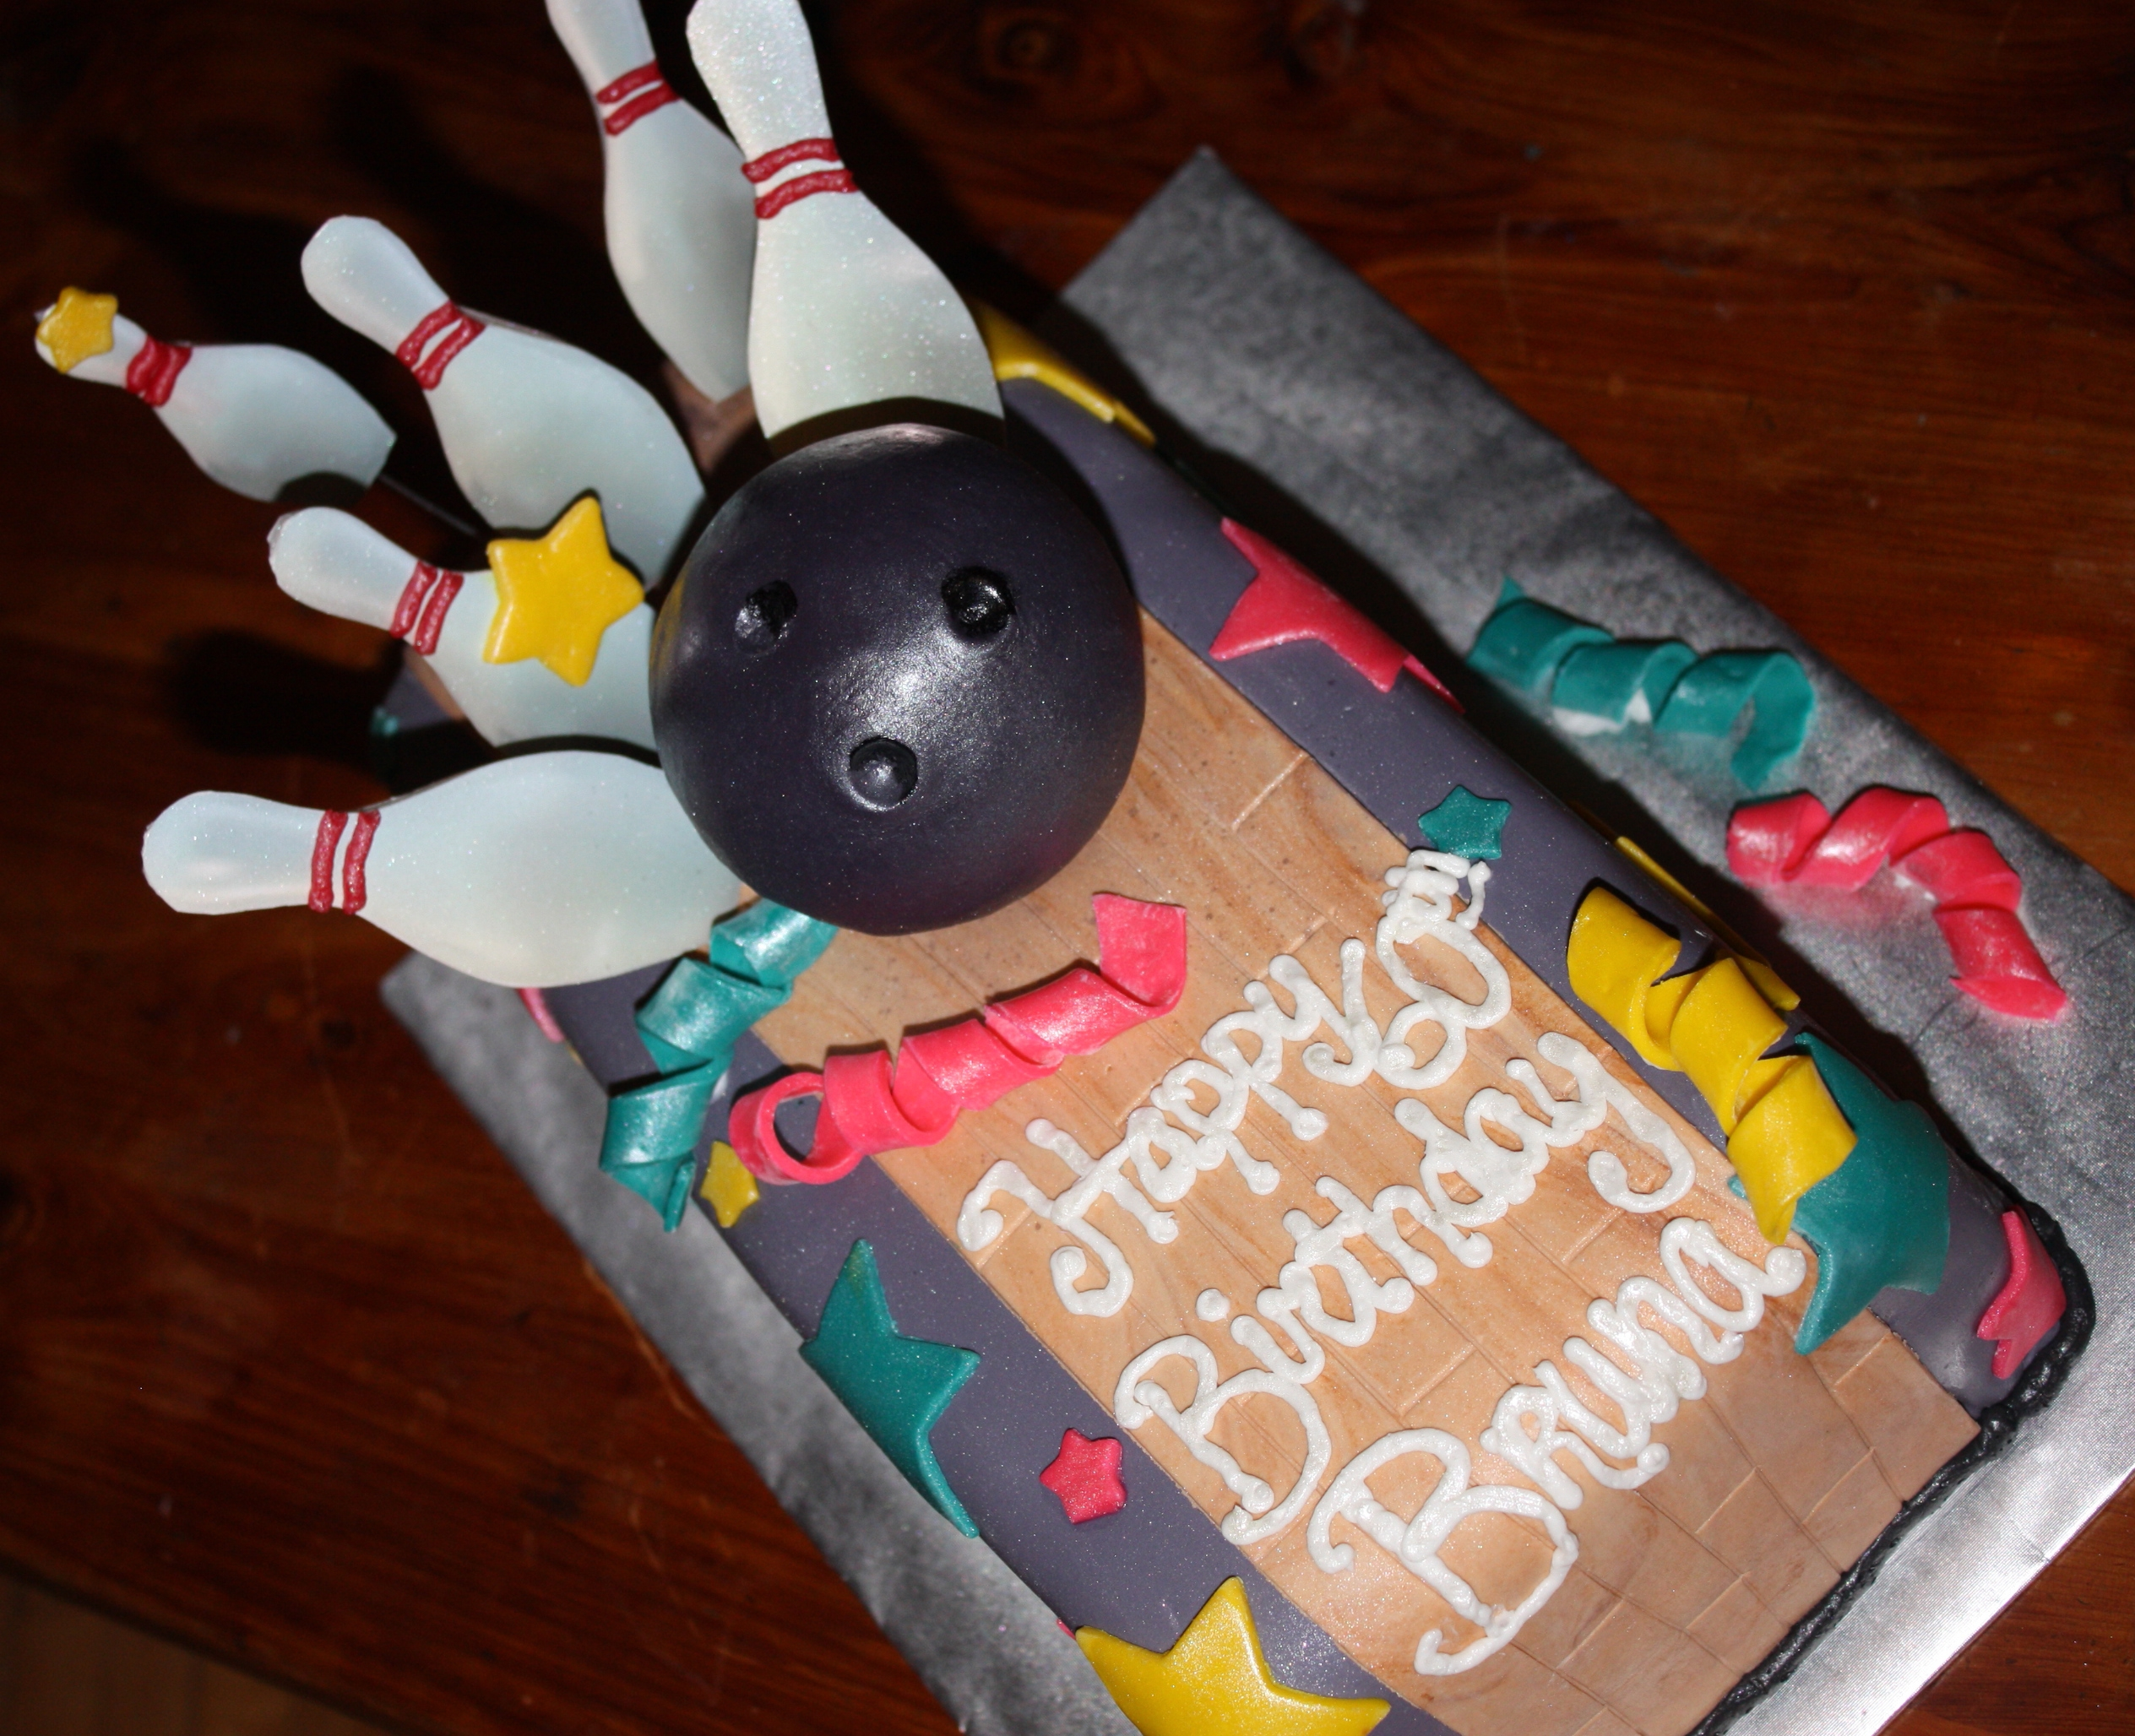 Bowling Lane Birthday Cake. Join me at facebook.com/creamcakery!